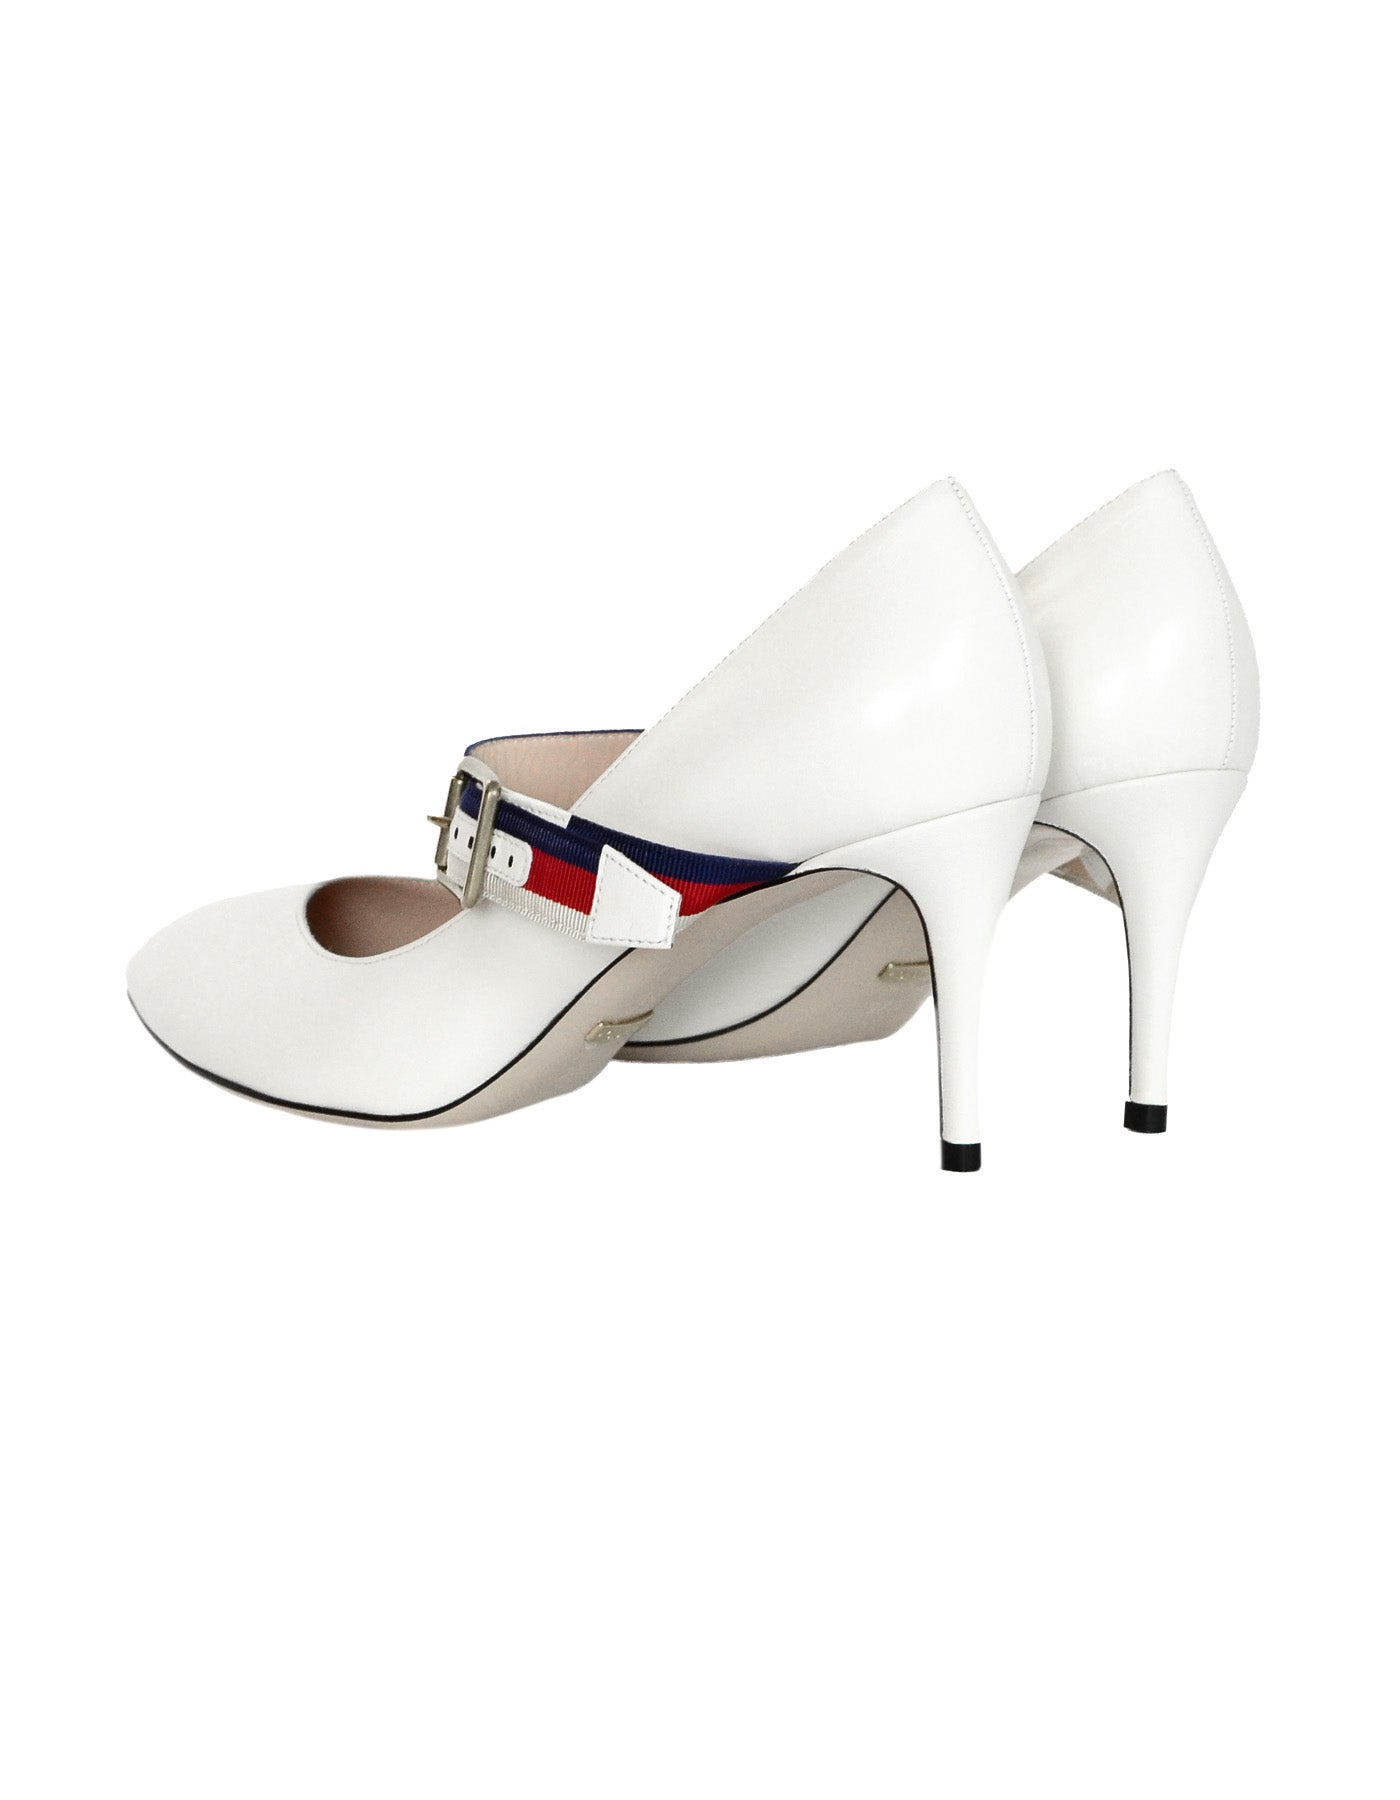 8c26b201f Gucci NEW White Leather Sylvie Pumps w. Red/Blue Grosgrain-Trimmed Web Sz  37.5 For Sale at 1stdibs